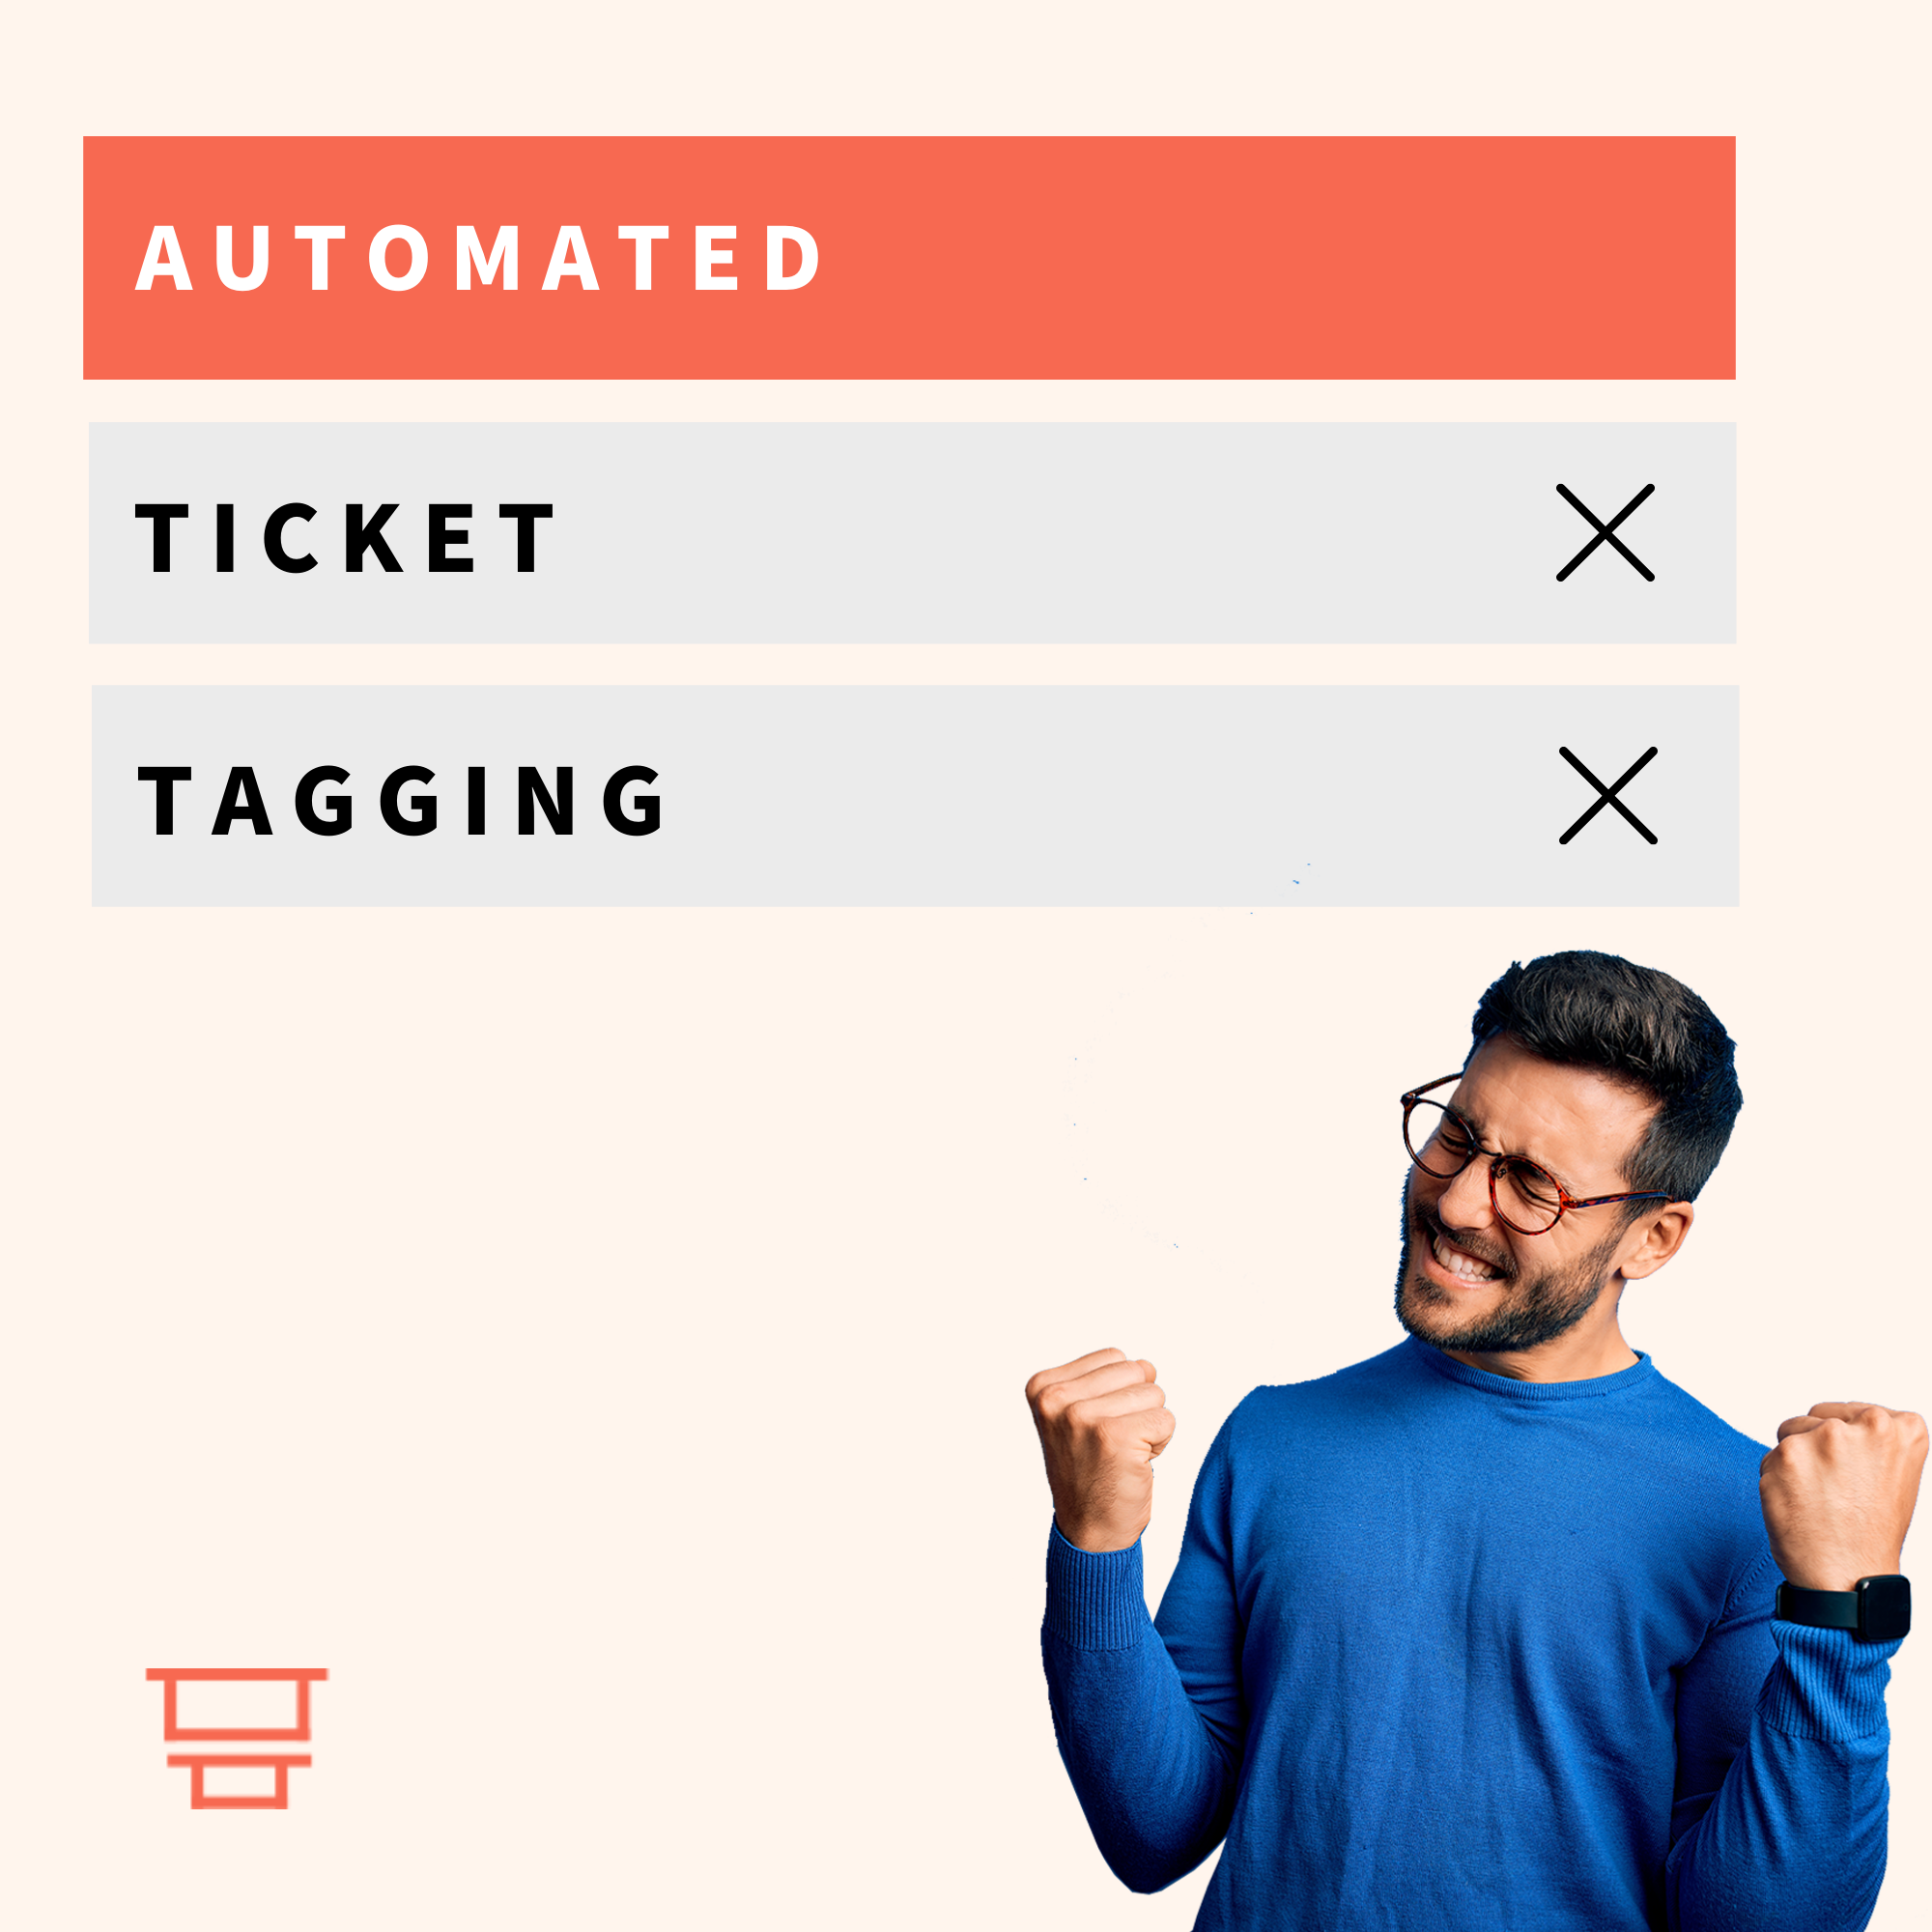 Automated ticket tagging: Why is machine learning so good?